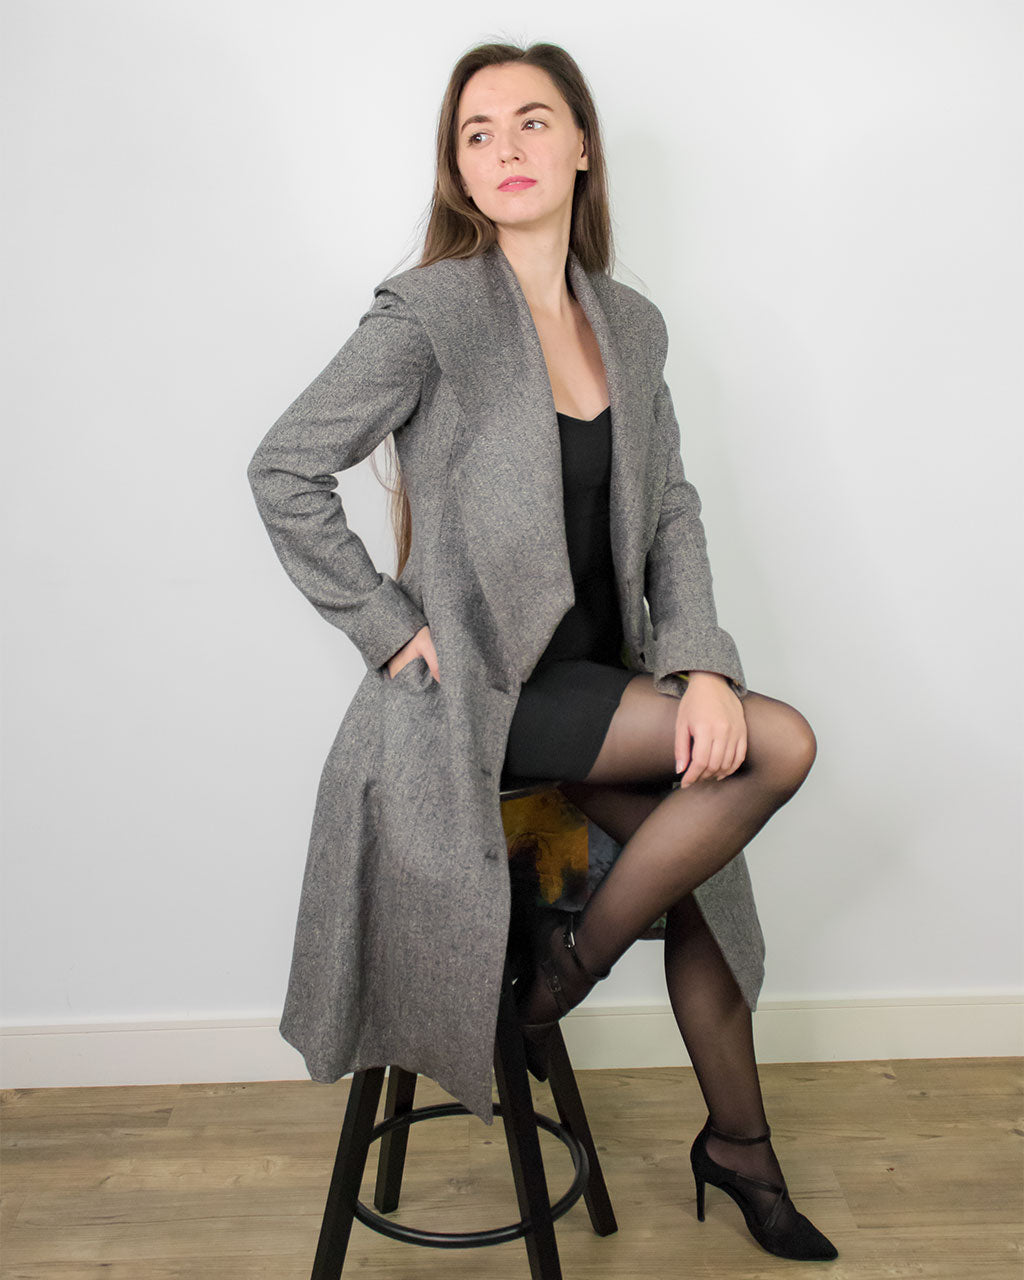 Profile view of tweed grey wool hemp Baldo swing flare Coat by ADKN made from light sustainable materials perfect for spring